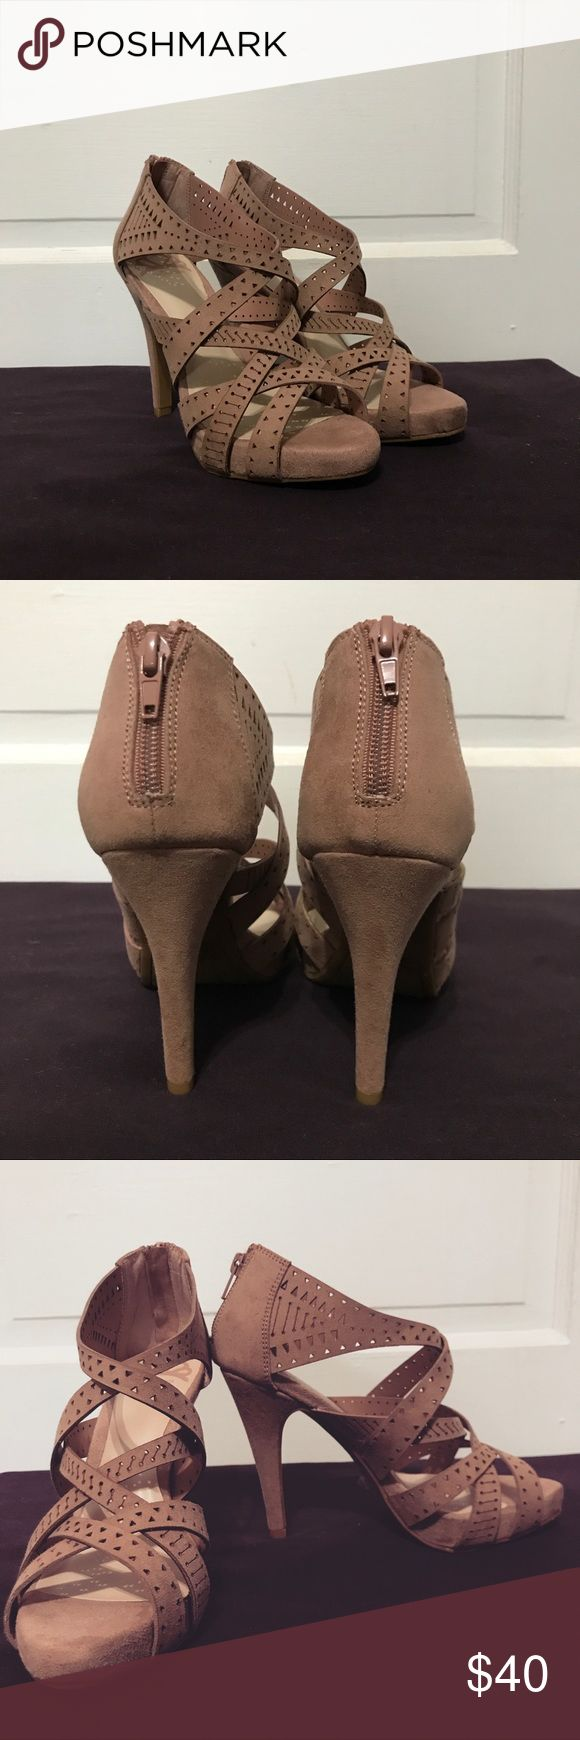 Pink suede heels Pink suede heels with zipper back - Size 6.5 but runs a little big (would most likely fit someone who wears a 7). Brand new! Never worn! Fergalicious Shoes Heels